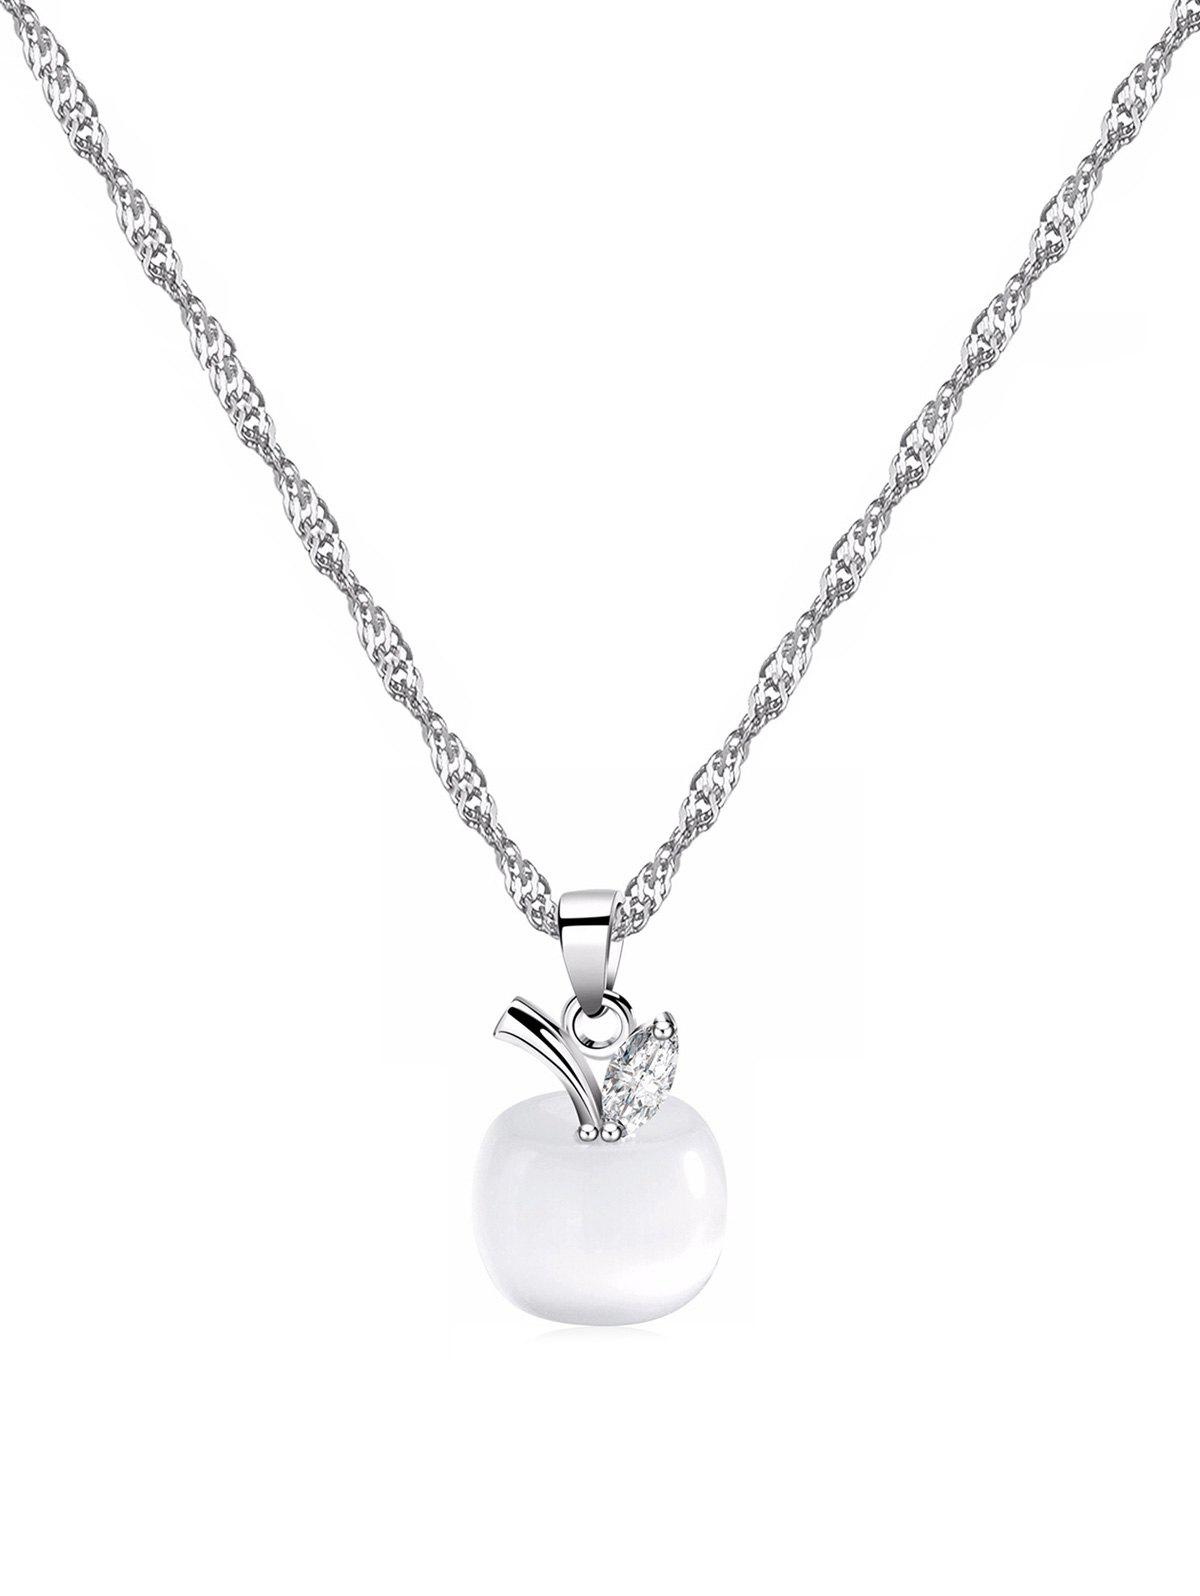 Christmas Eve Apple Shape Faux Opal Pendant Necklace, Silver